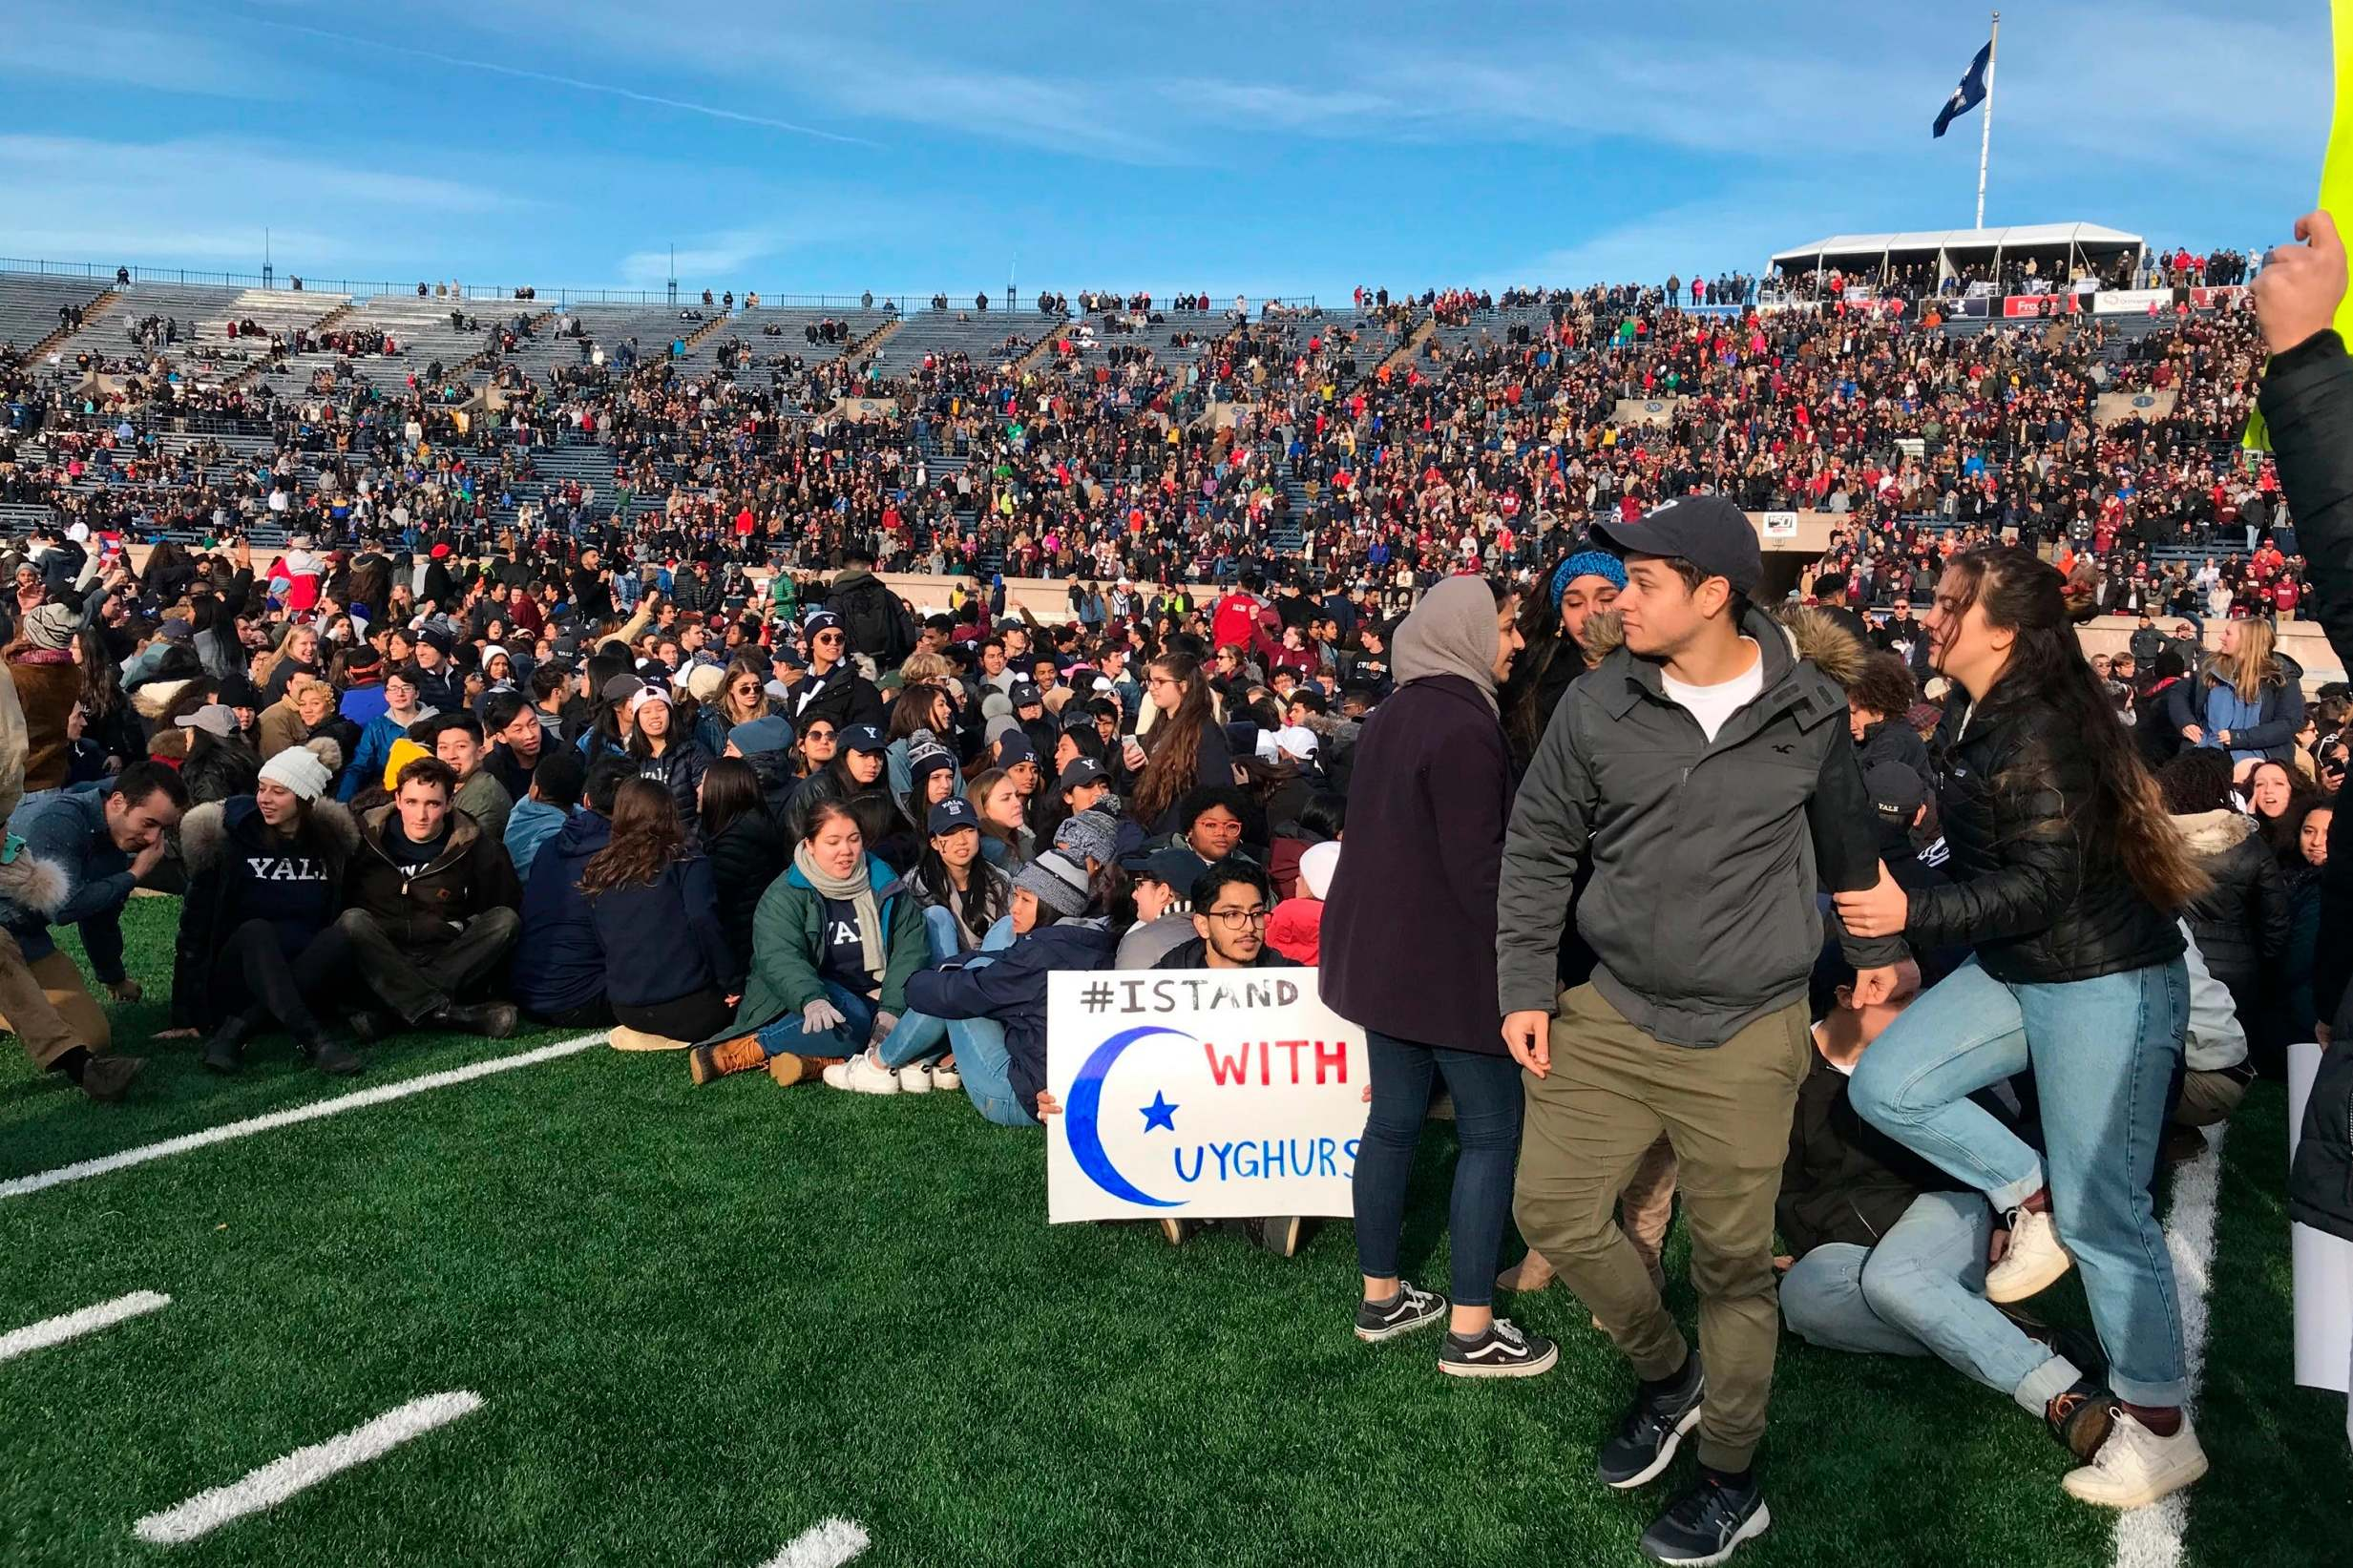 Harvard-Yale football game grinds to halt as hundreds of students storm field to protest climate change